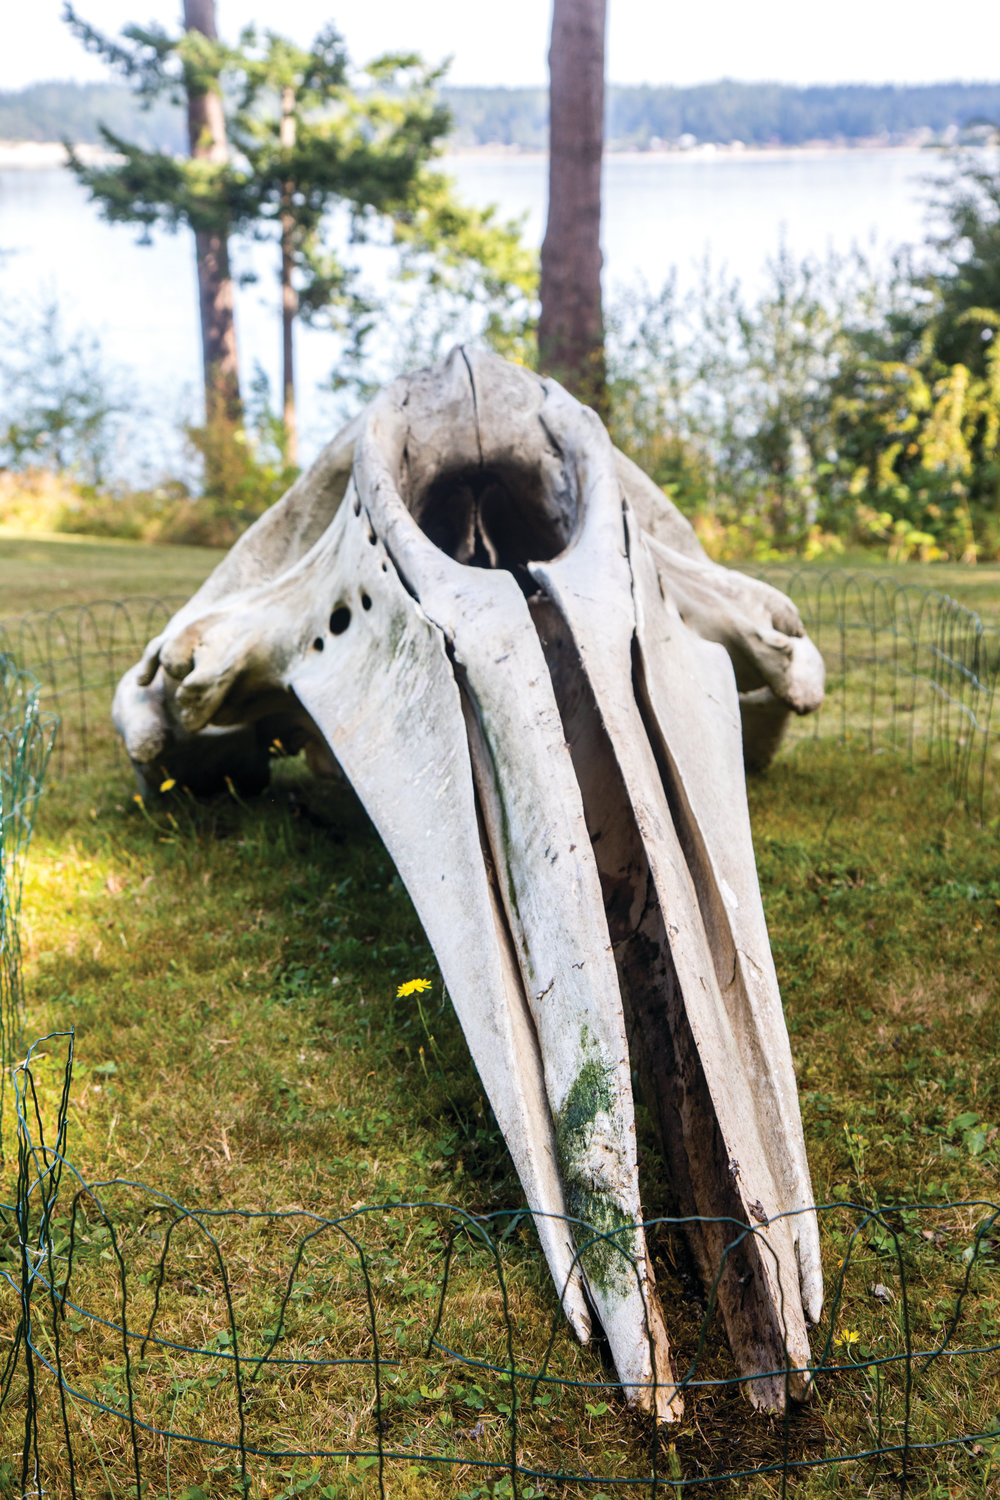 The skull of a gray whale rests in the grassy backyard of Dr. Stefanie Worwag and Mario Rivera, who live in Port Hadlock. They watched as the whale decomposed on their beach over the summer. Now, they are trying to figure out how to clean the massive bones in preparation for reassembling the skeleton.